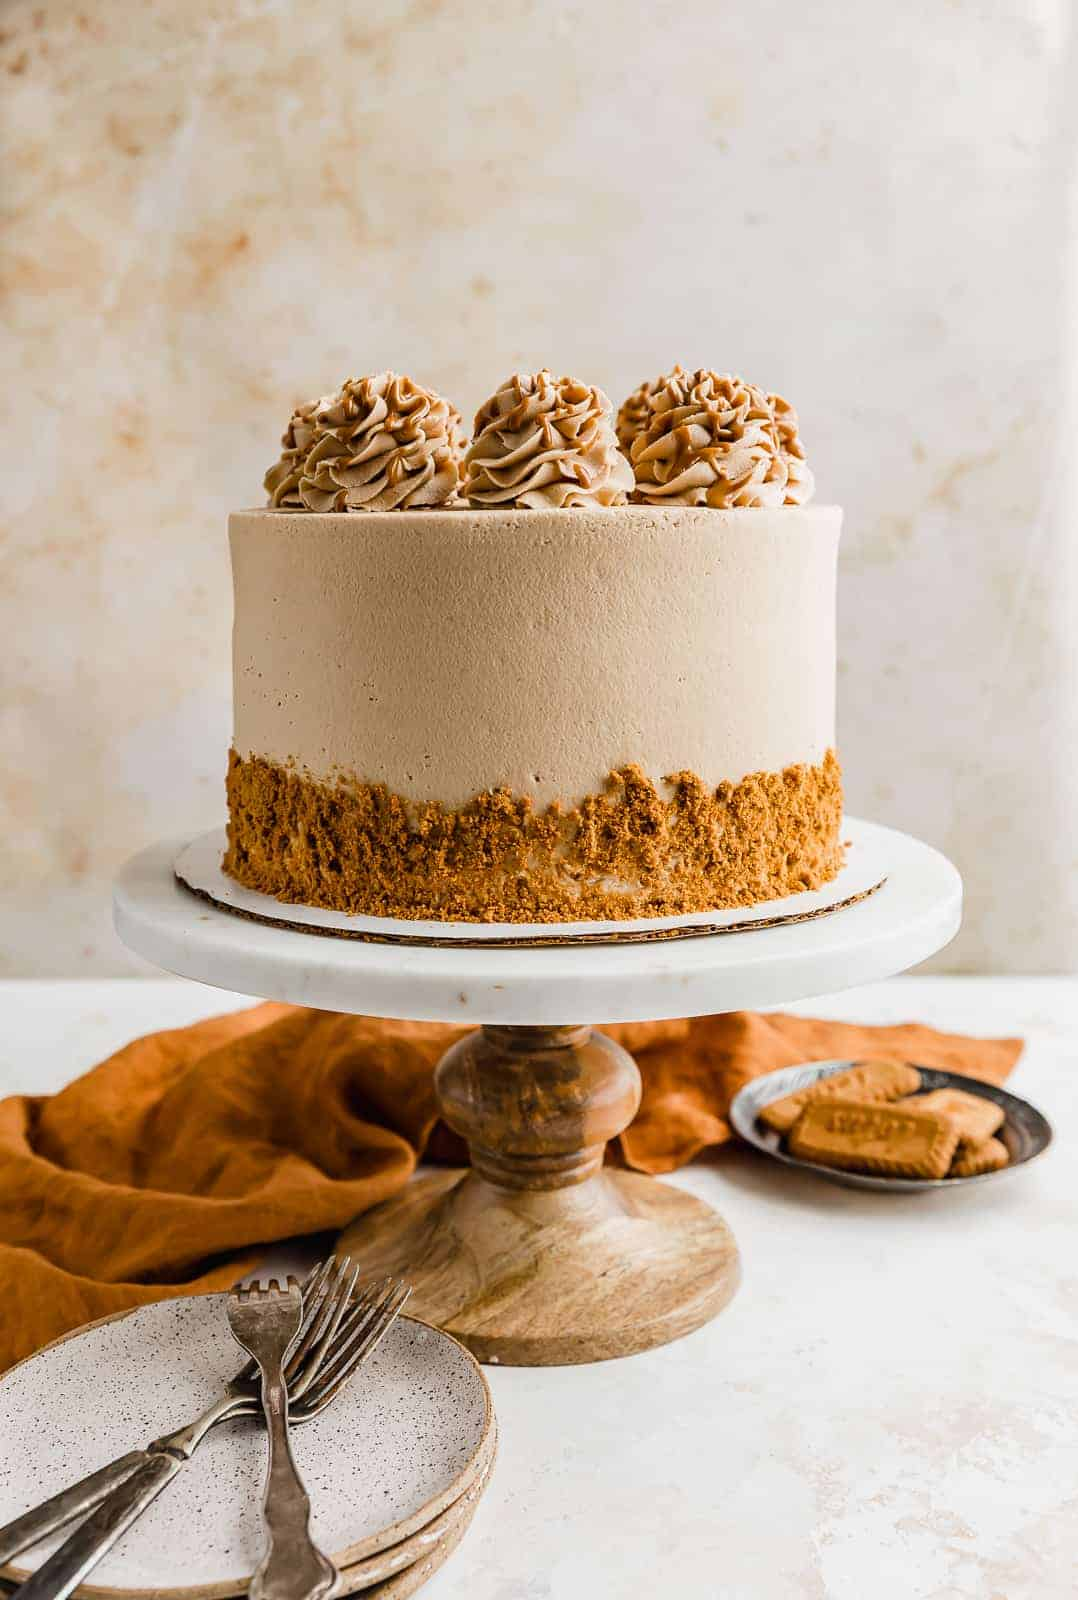 An eight inch Biscoff cake covered in Biscoff buttercream and Biscoff crumbs.